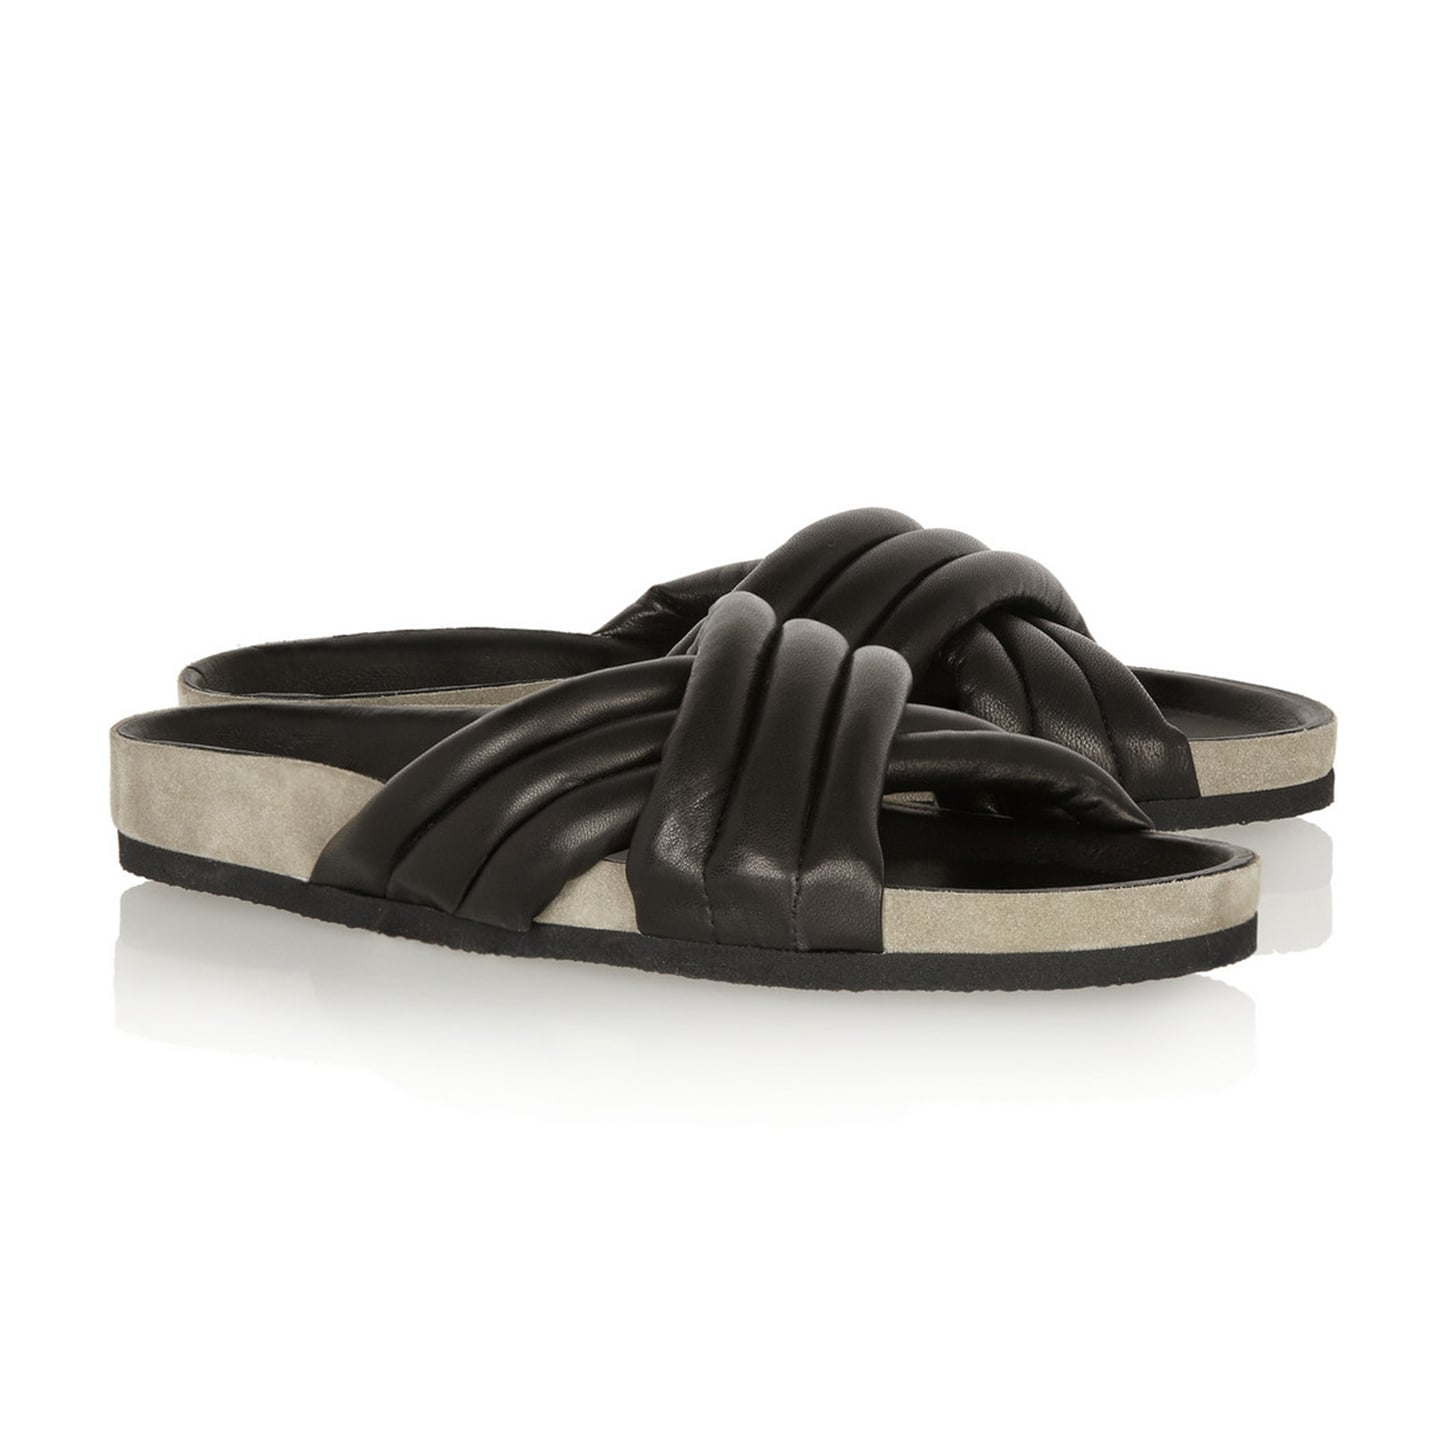 Isabel Marant Holden Slides